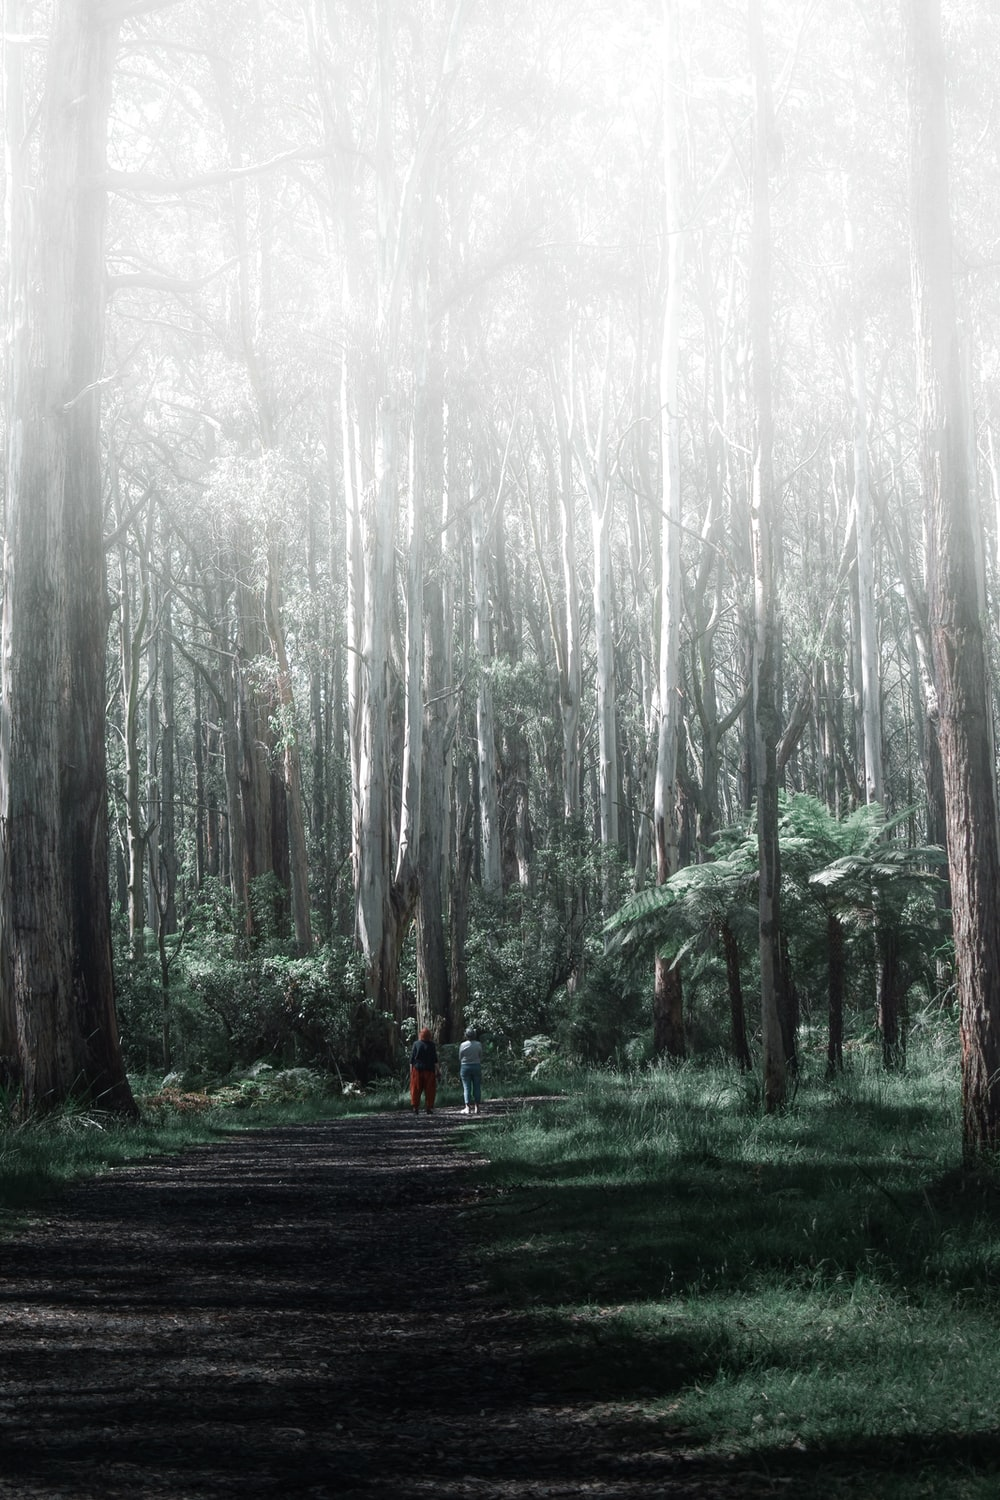 person in orange jacket walking on pathway between trees during foggy weather